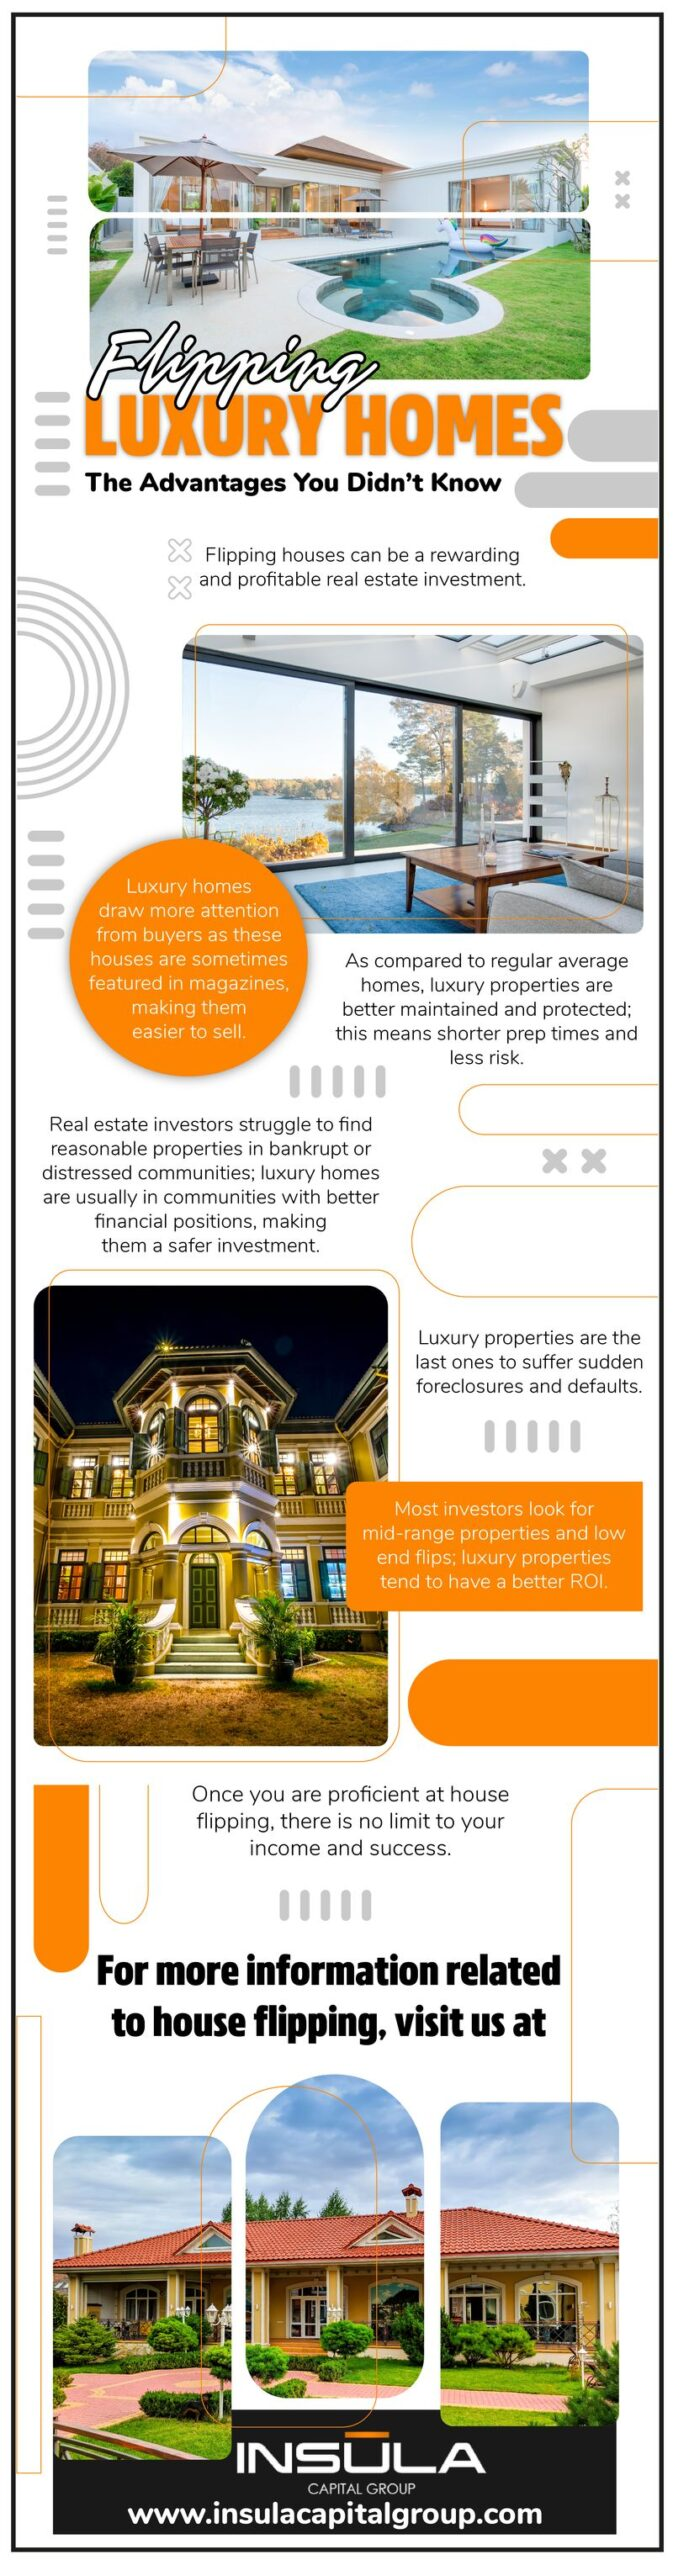 Flipping Luxury Homes The Advantages You Didn't Know